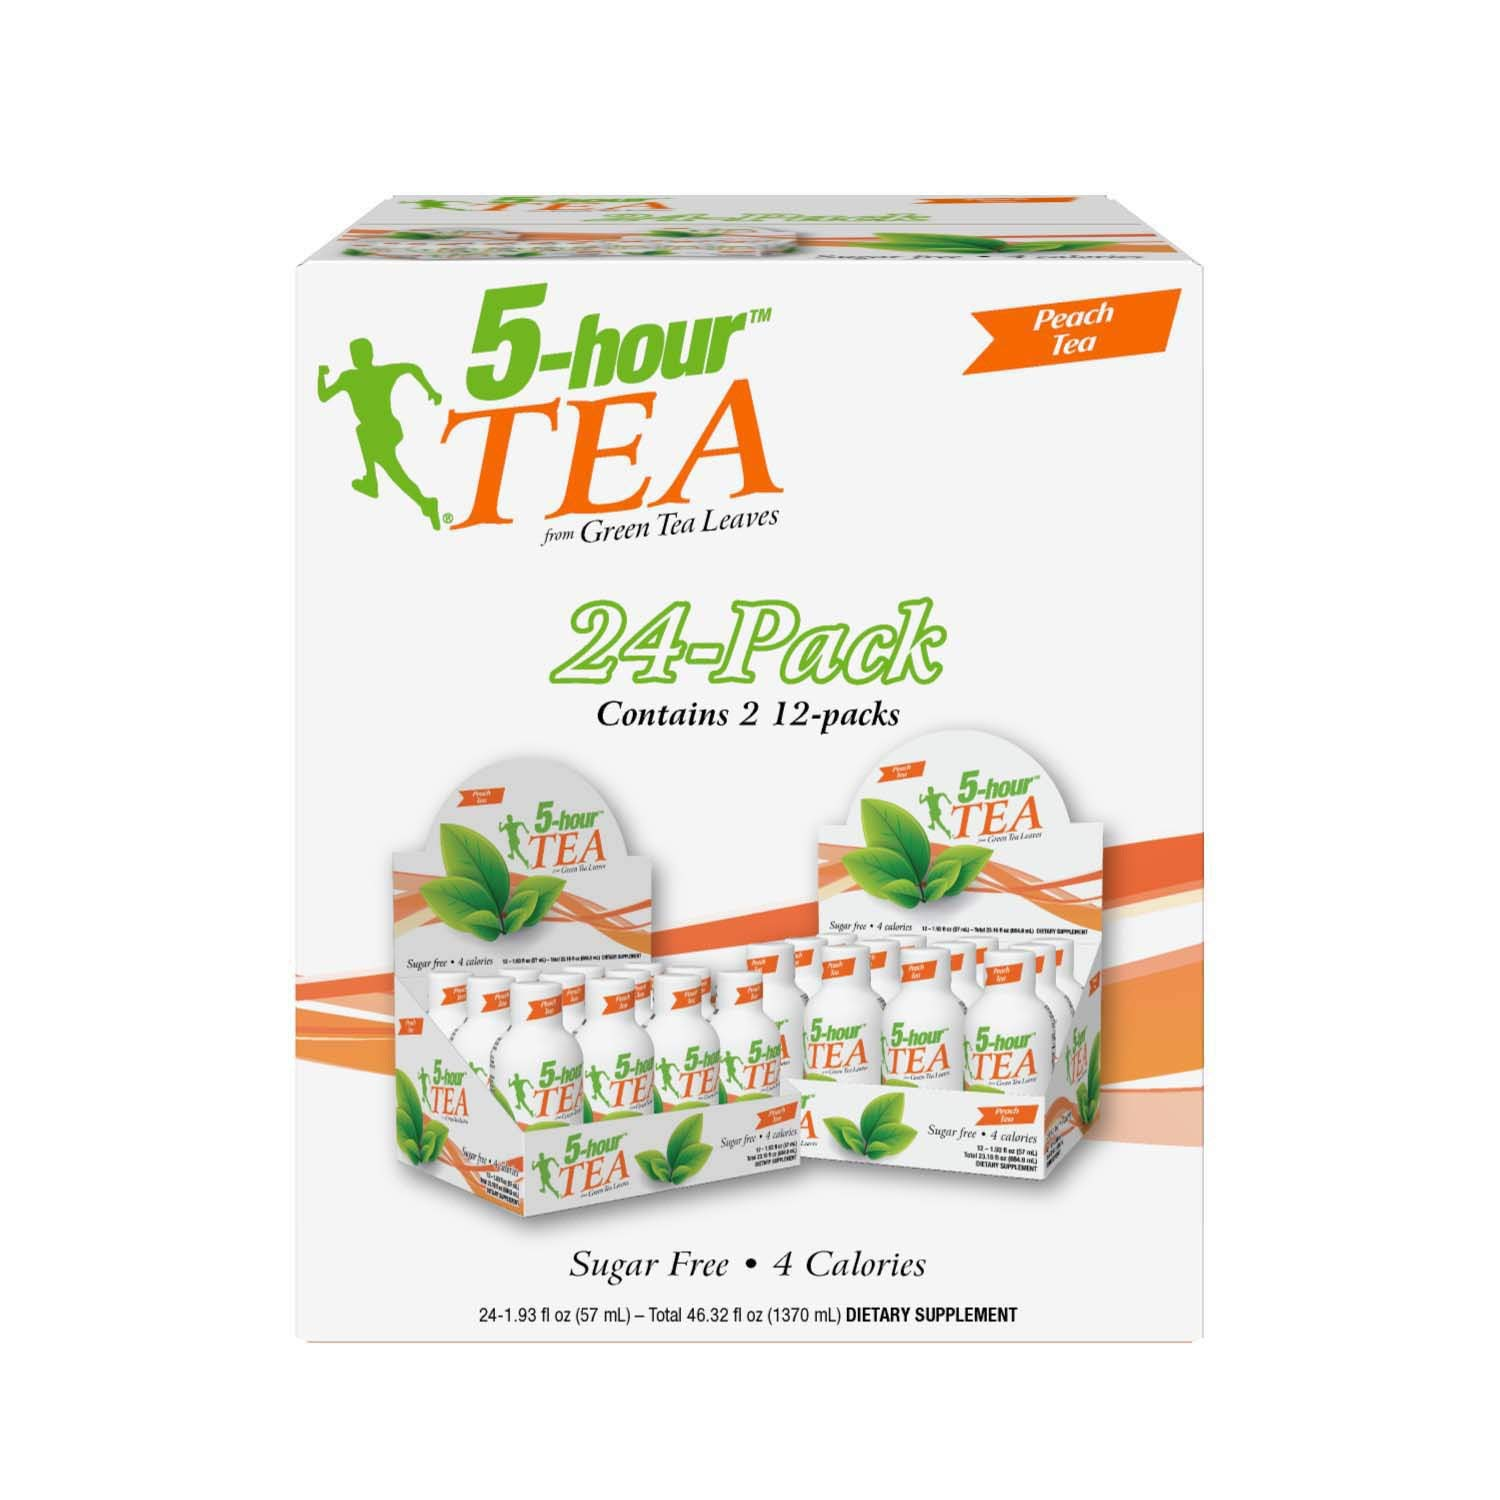 5-hour Green TEA - Peach Flavored - 24 Count by 5-Hours (Image #3)